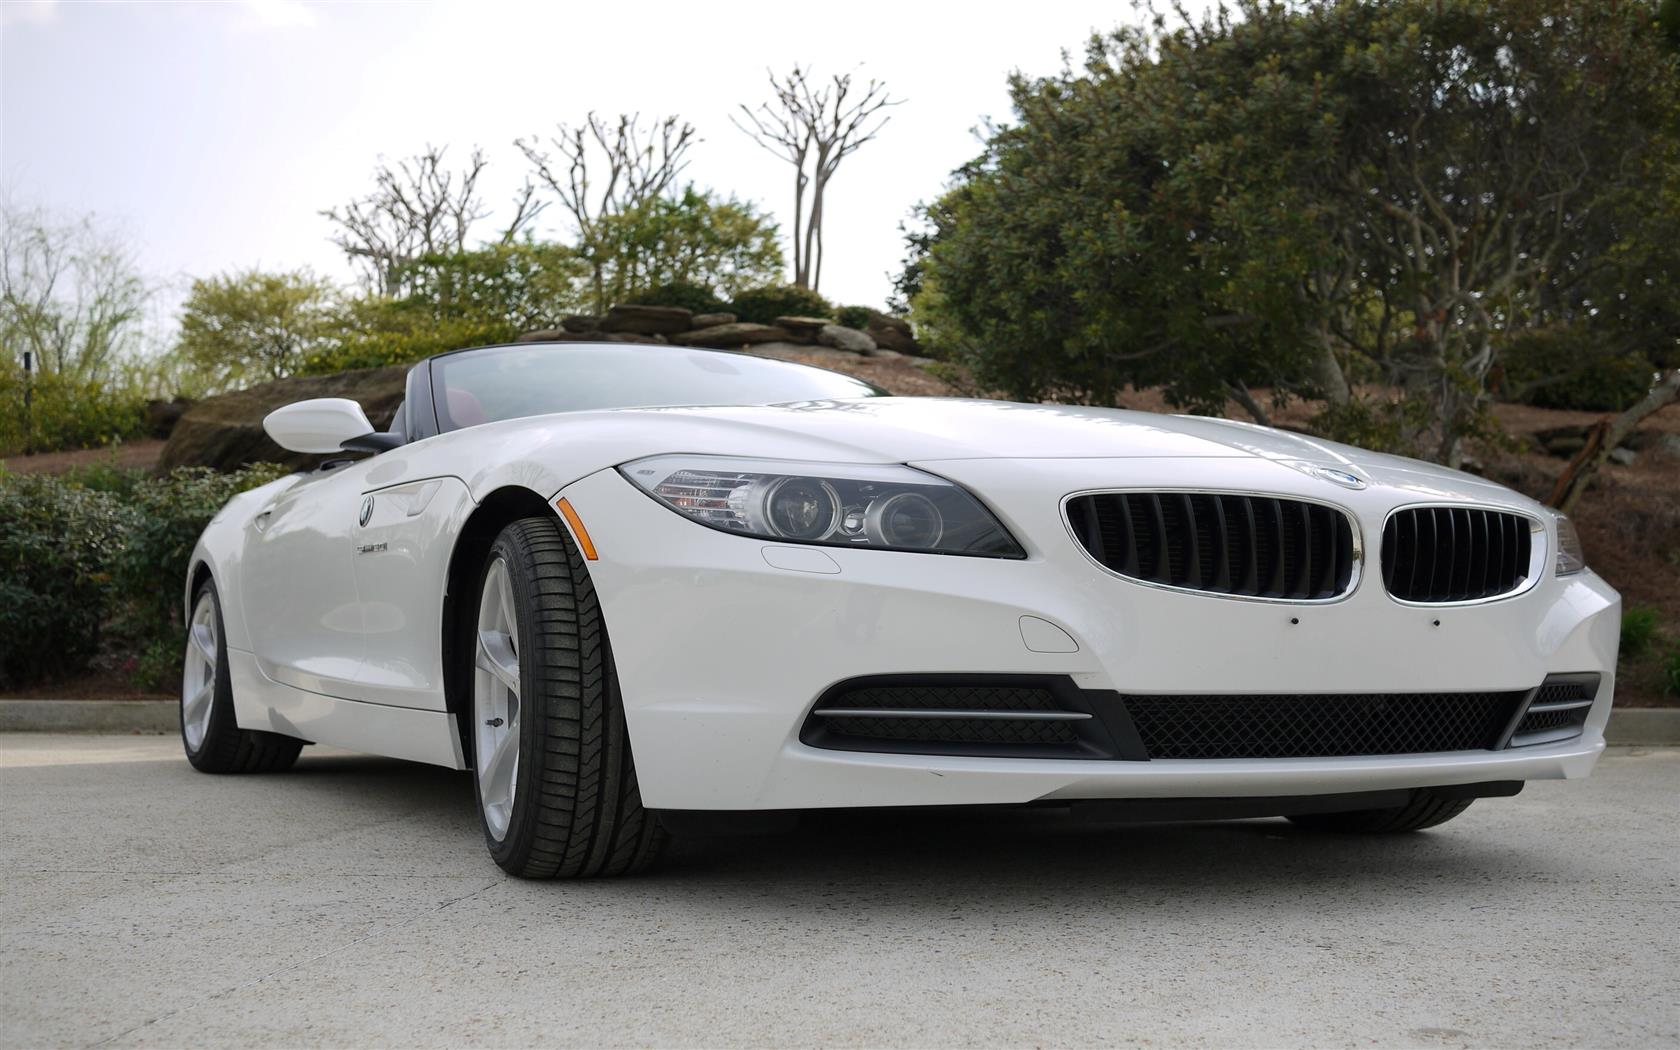 1680x1050 New White E89 BMW Z4 Sporty and Topless Car Wallpapers Download